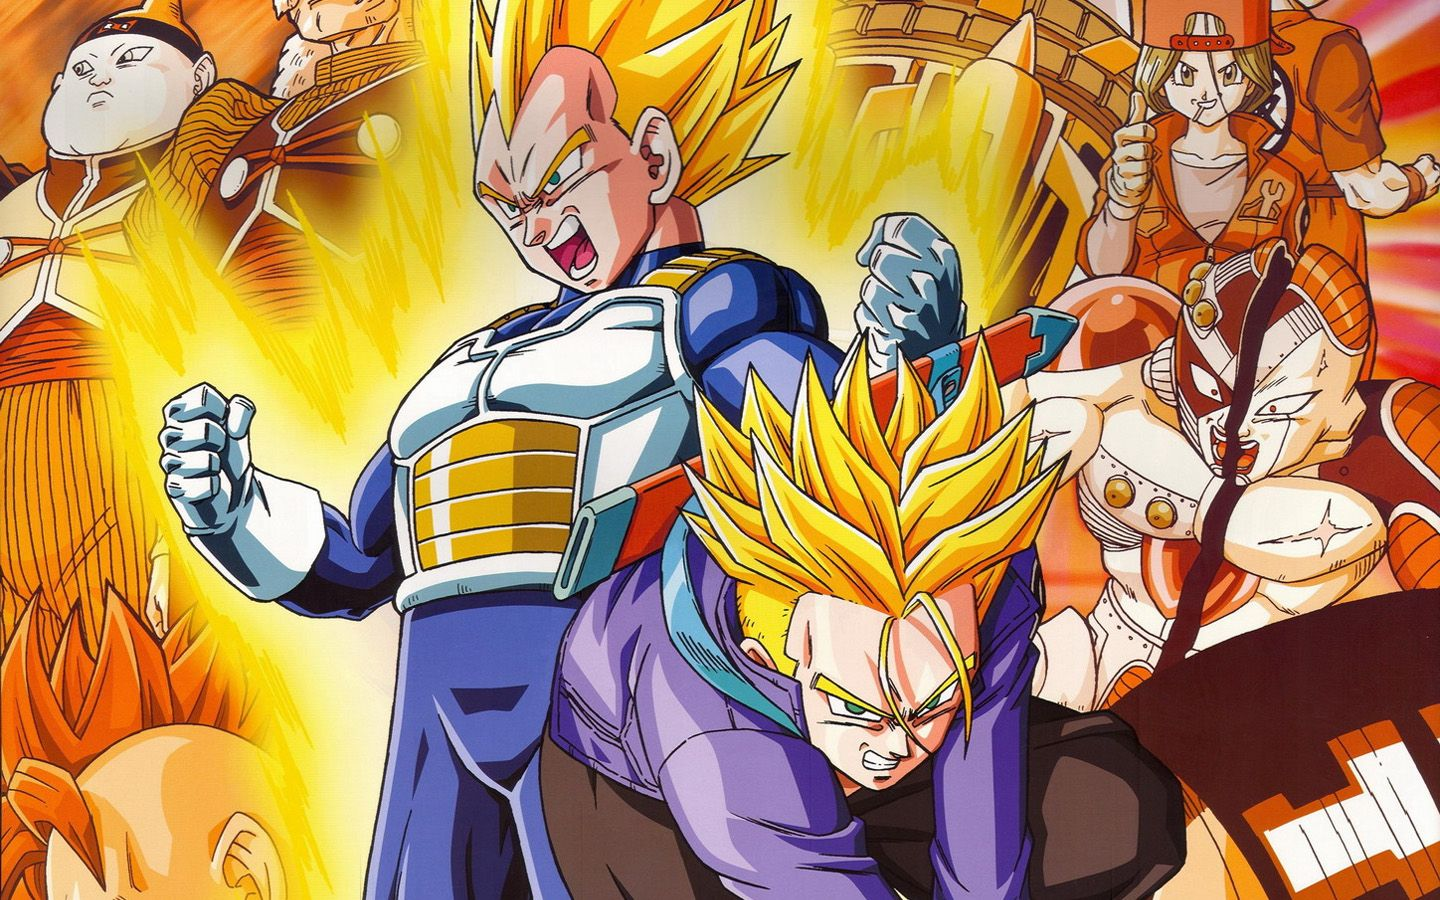 Vegeta And Trunks Wallpapers Top Free Vegeta And Trunks Backgrounds Wallpaperaccess